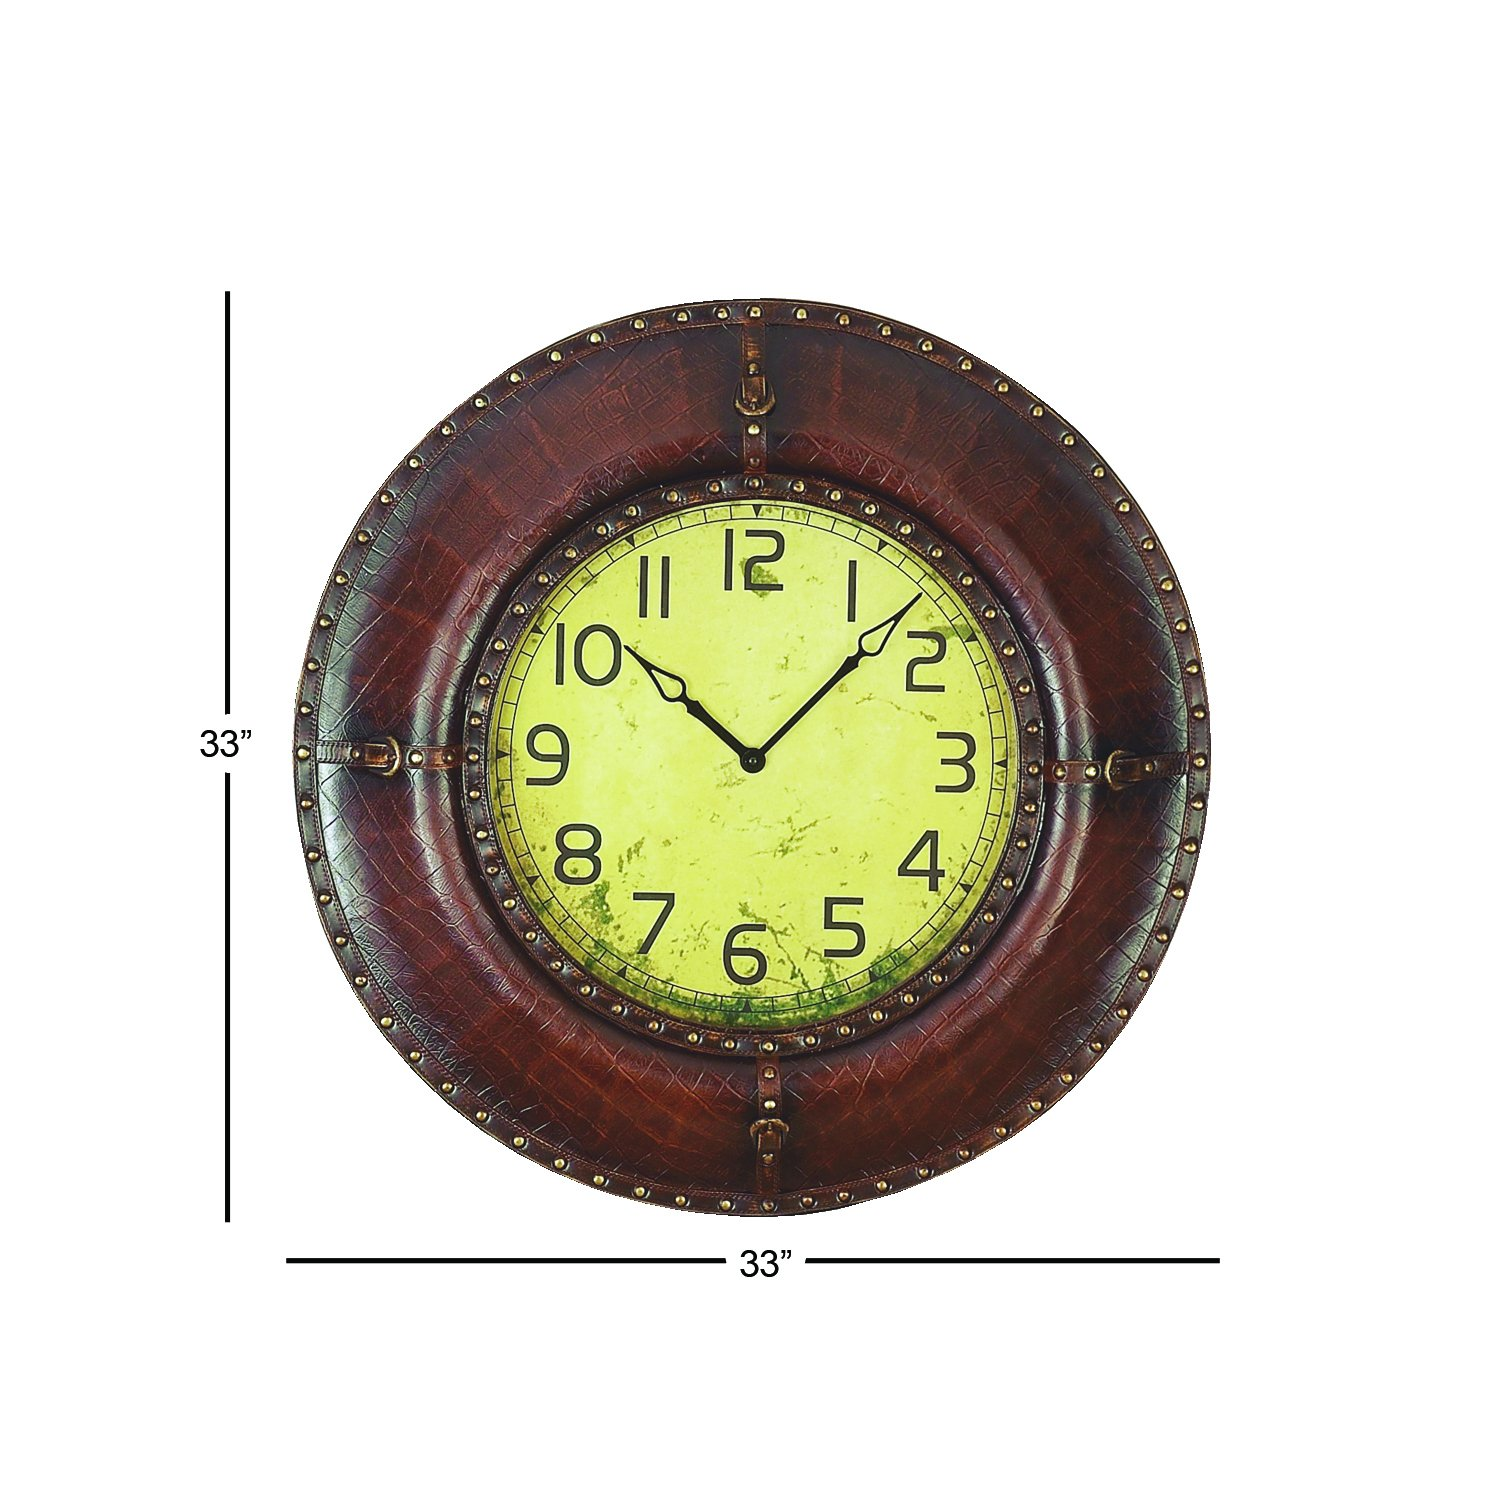 Deco 79 71952 Wood Leather Wall Clock, 33''